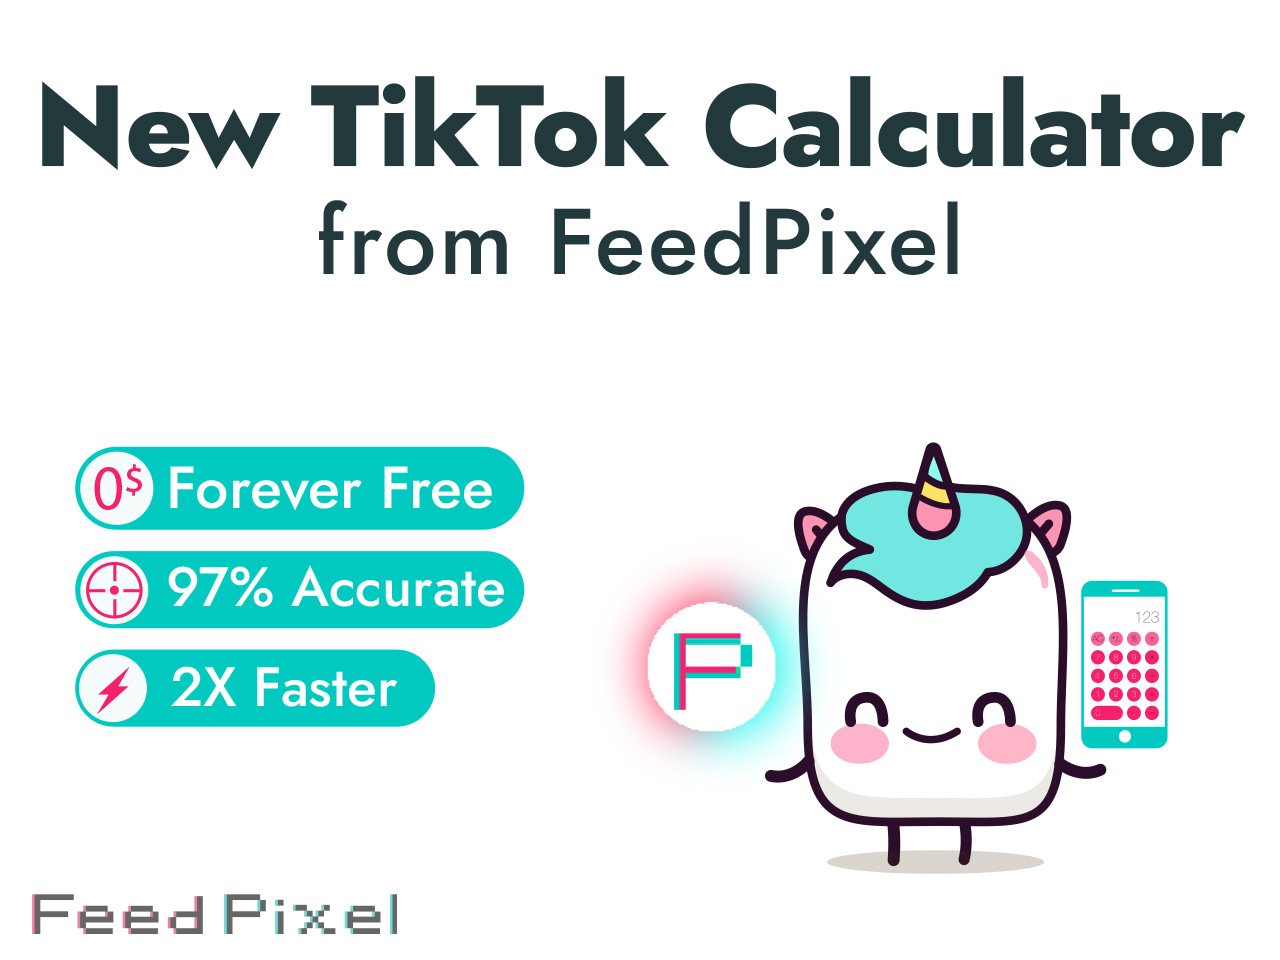 FeedPixel's New TikTok Calculator Measures the Earning Potential of a Post For Influencers